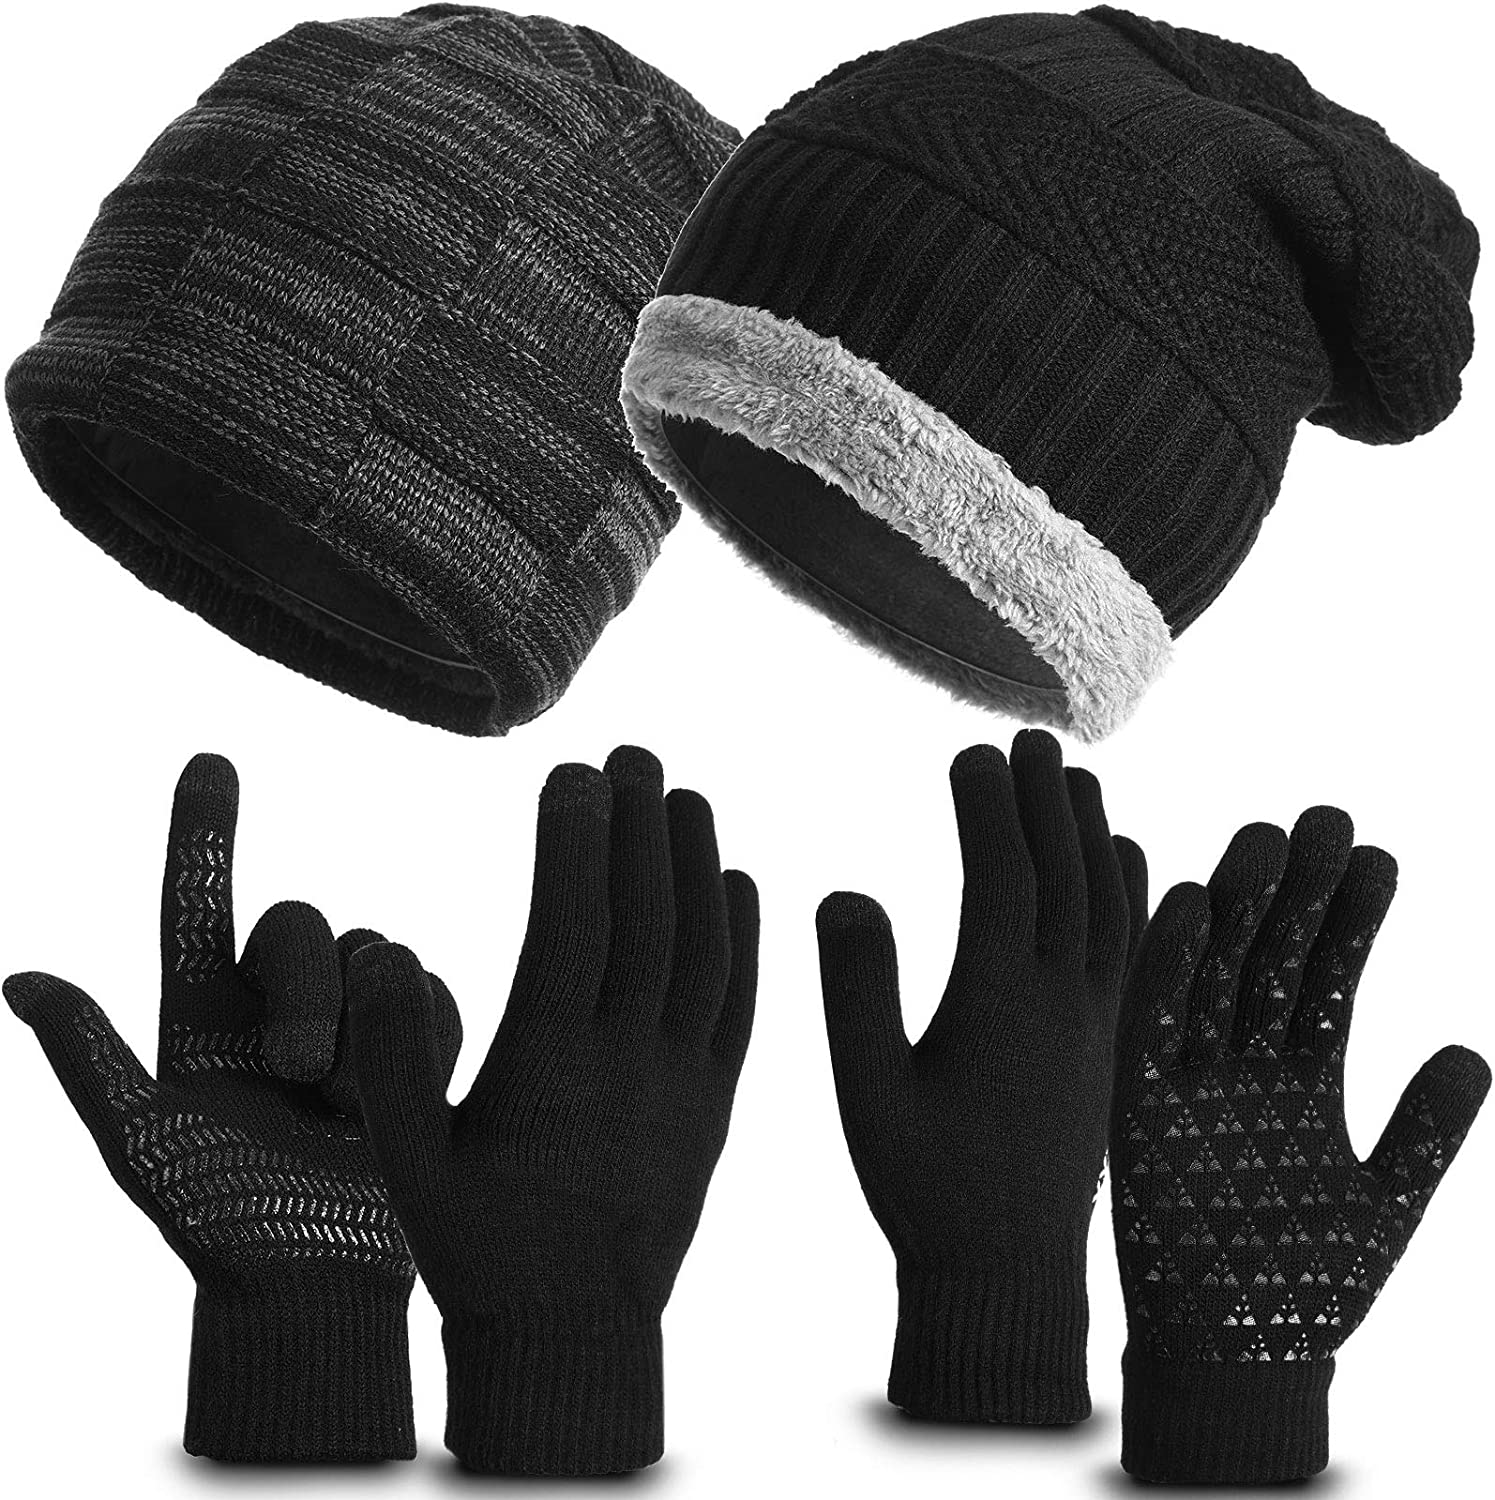 Winter Beanie Hats Gloves Set Include 2 Pieces Slouchy Snow Knit Skull Cap and 2 Pairs Touch Screen Gloves with Anti-Slip Silicone Gel for Men and Women